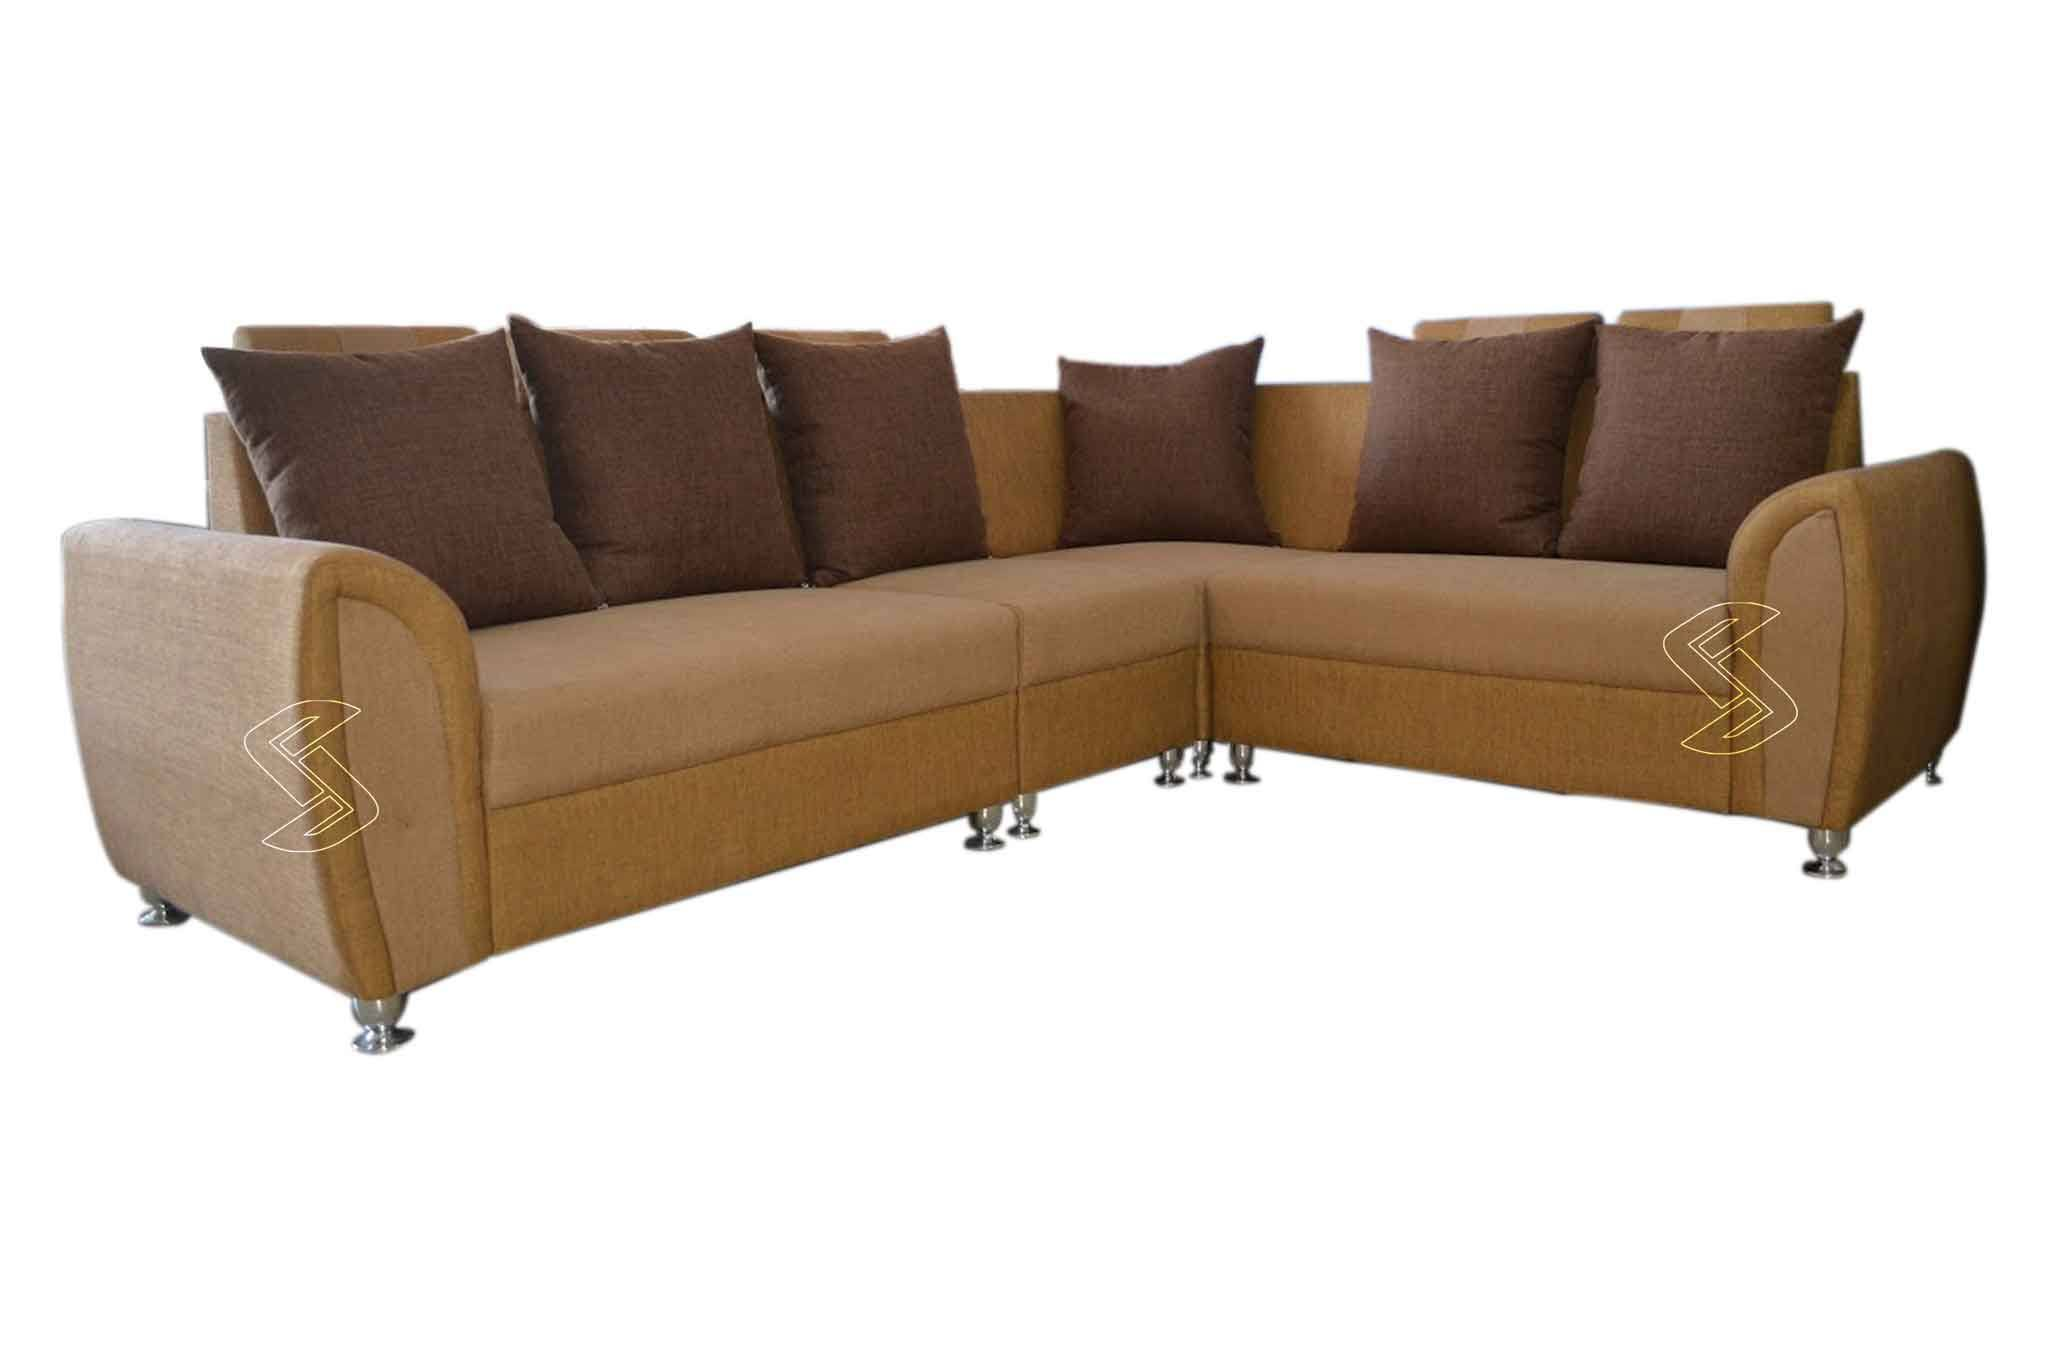 sofa sets in hyderabad online crate and barrel great giveaway cheap  review home decor